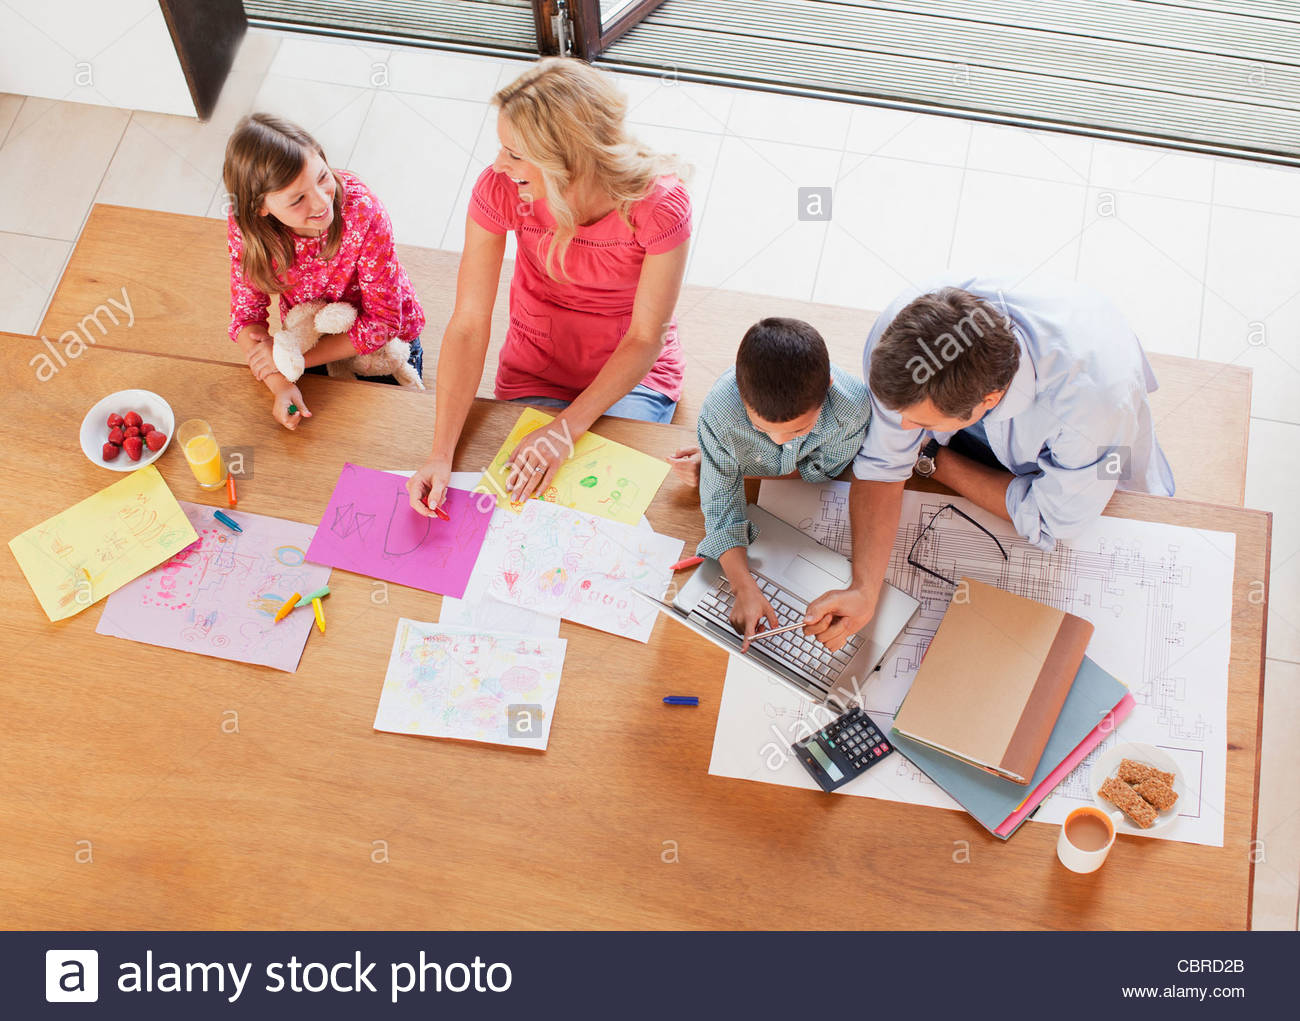 Family relaxing together at table - Stock Image